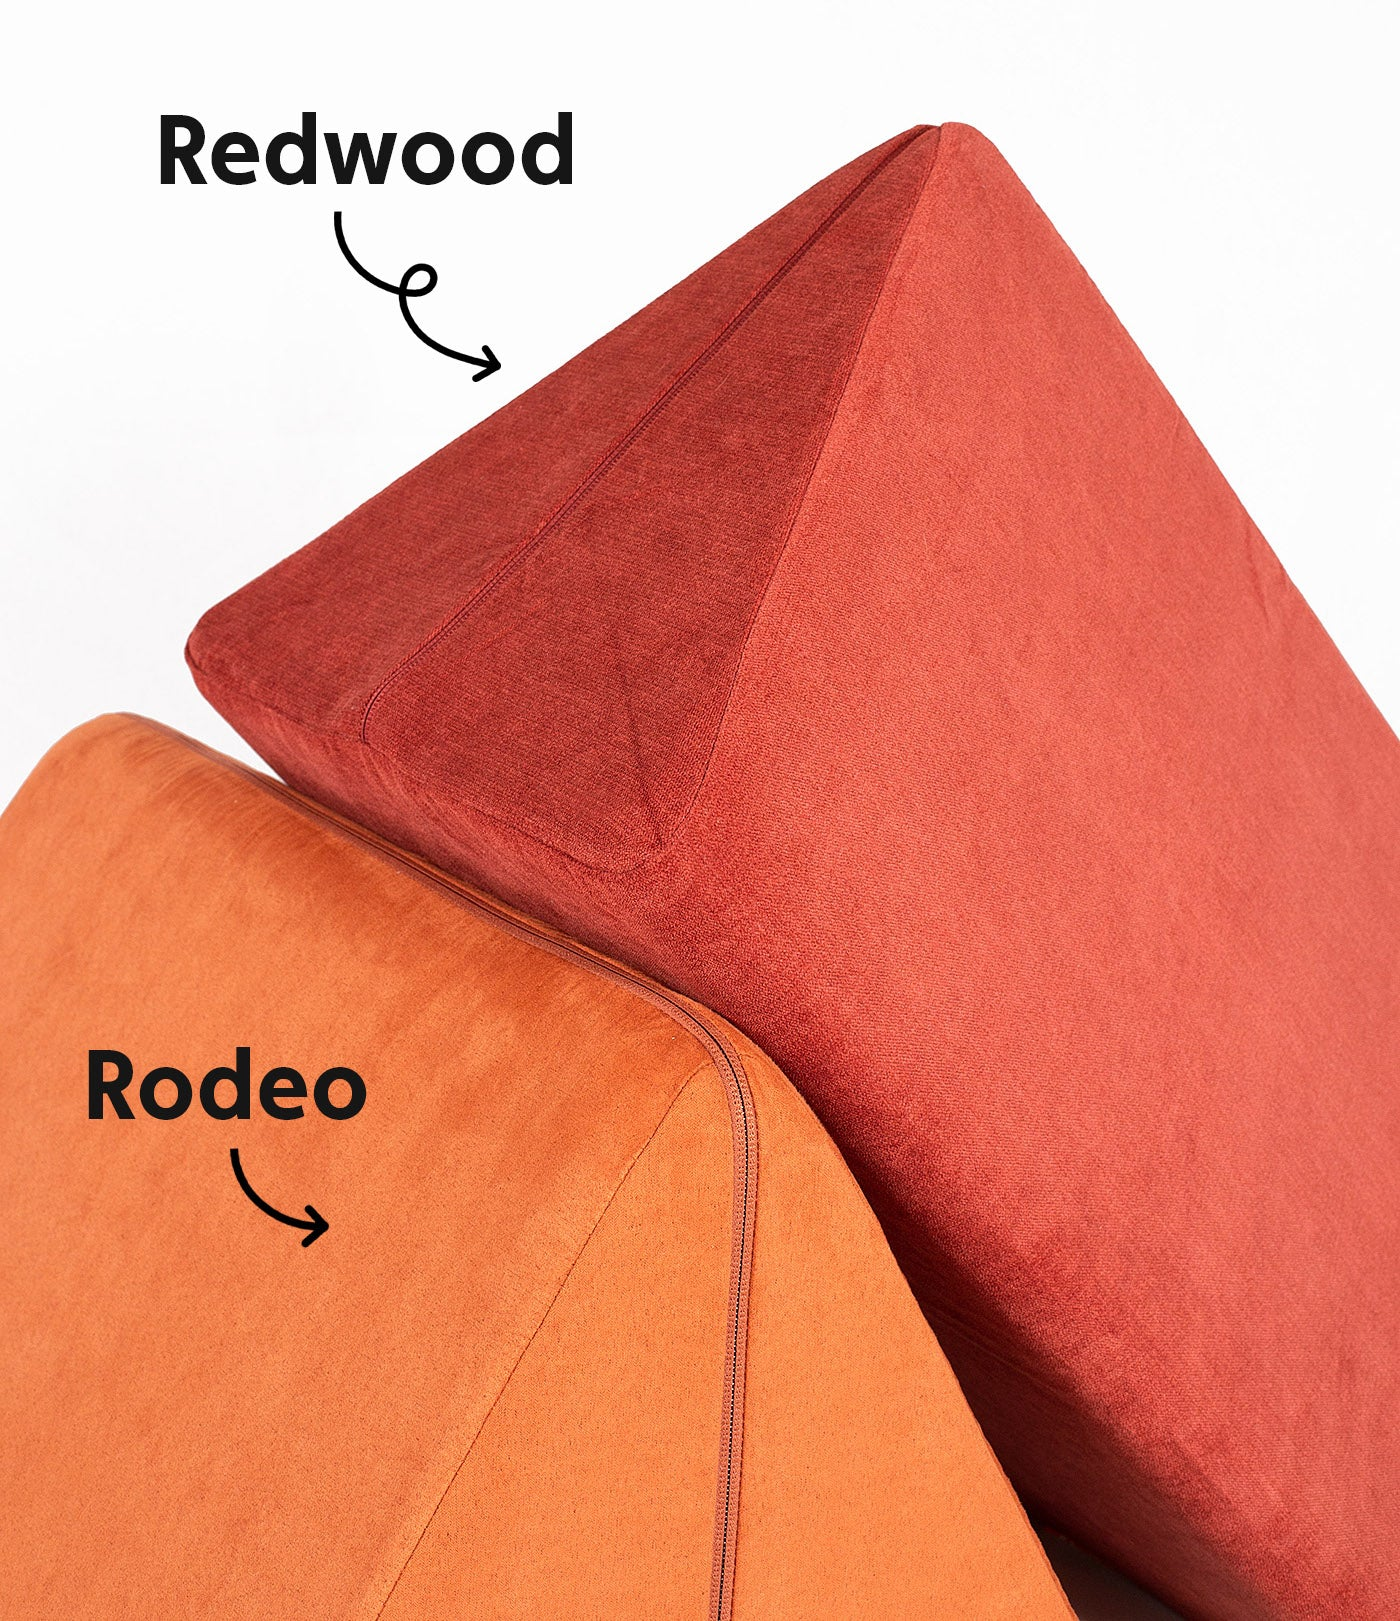 Redwood Pillow laid at an angle on Rodeo Pillow, with colors labeled with names and arrows